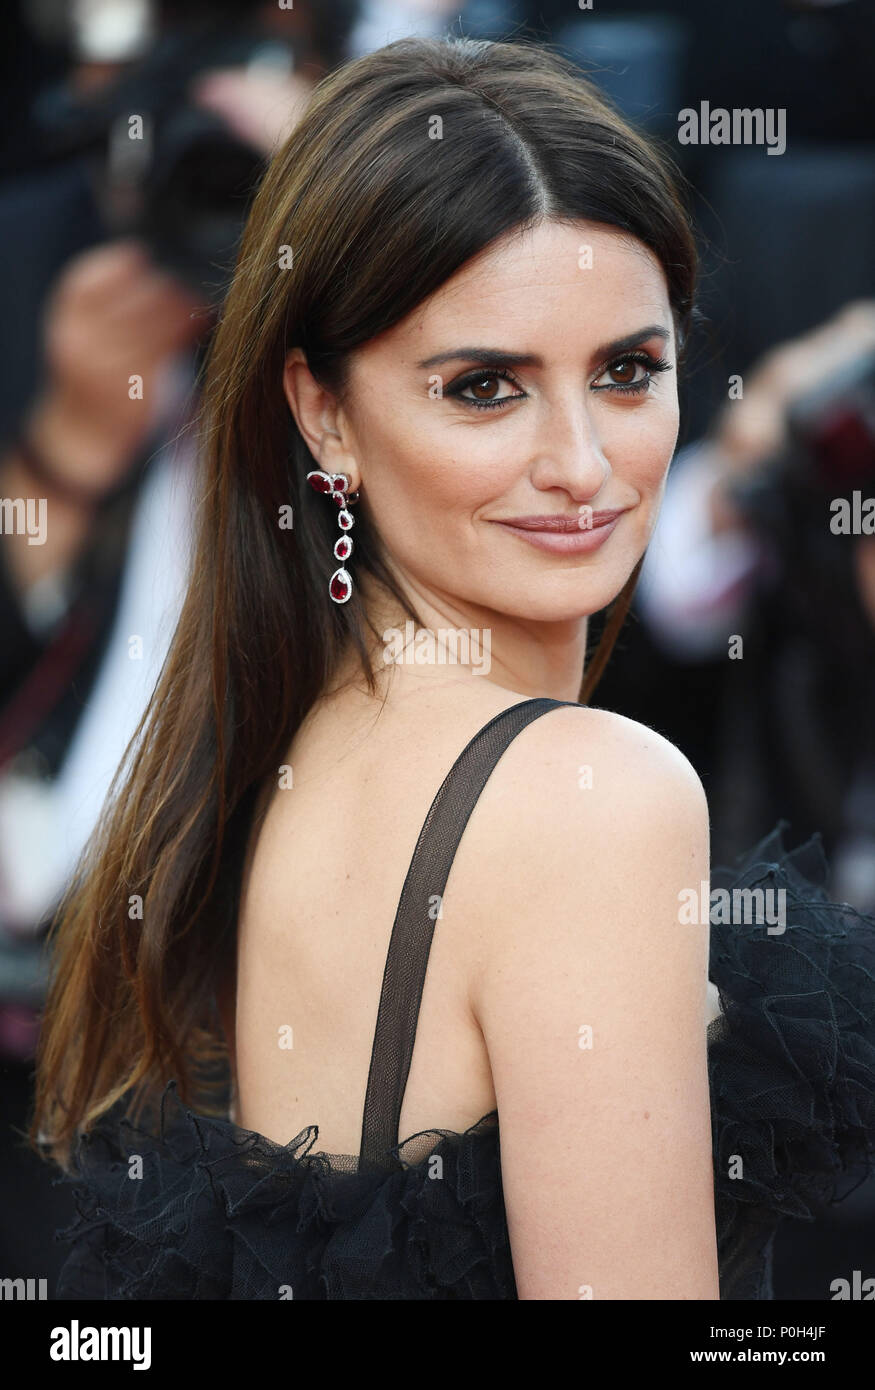 71st annual Cannes Film Festival - 'Everybody Knows' - Premiere and Opening Ceremony  Featuring: Penelope Cruz Where: Cannes, France When: 08 May 2018 Credit: WENN.com Stock Photo